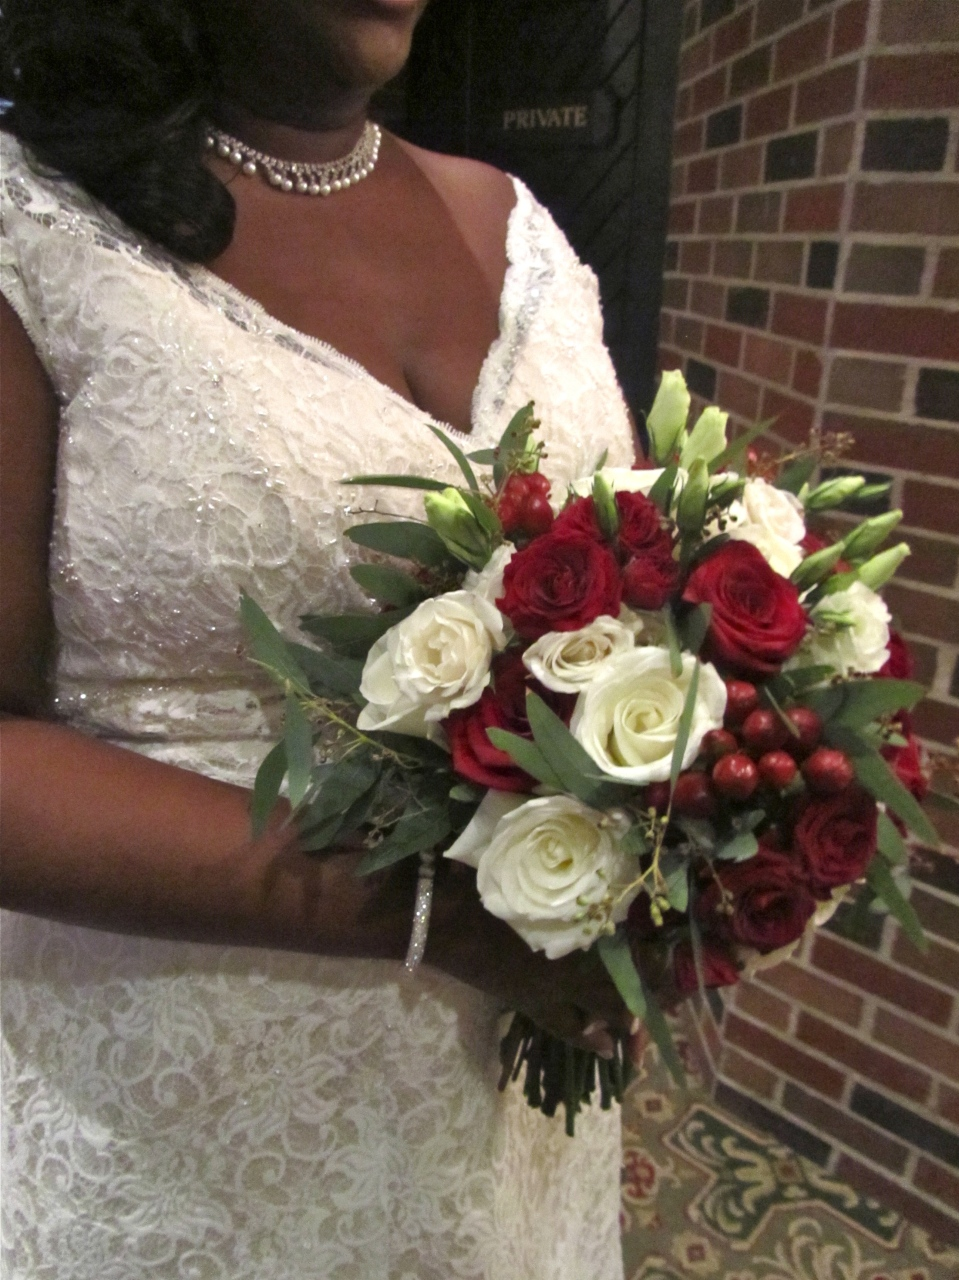 Cranberry, white and greenery bouquet